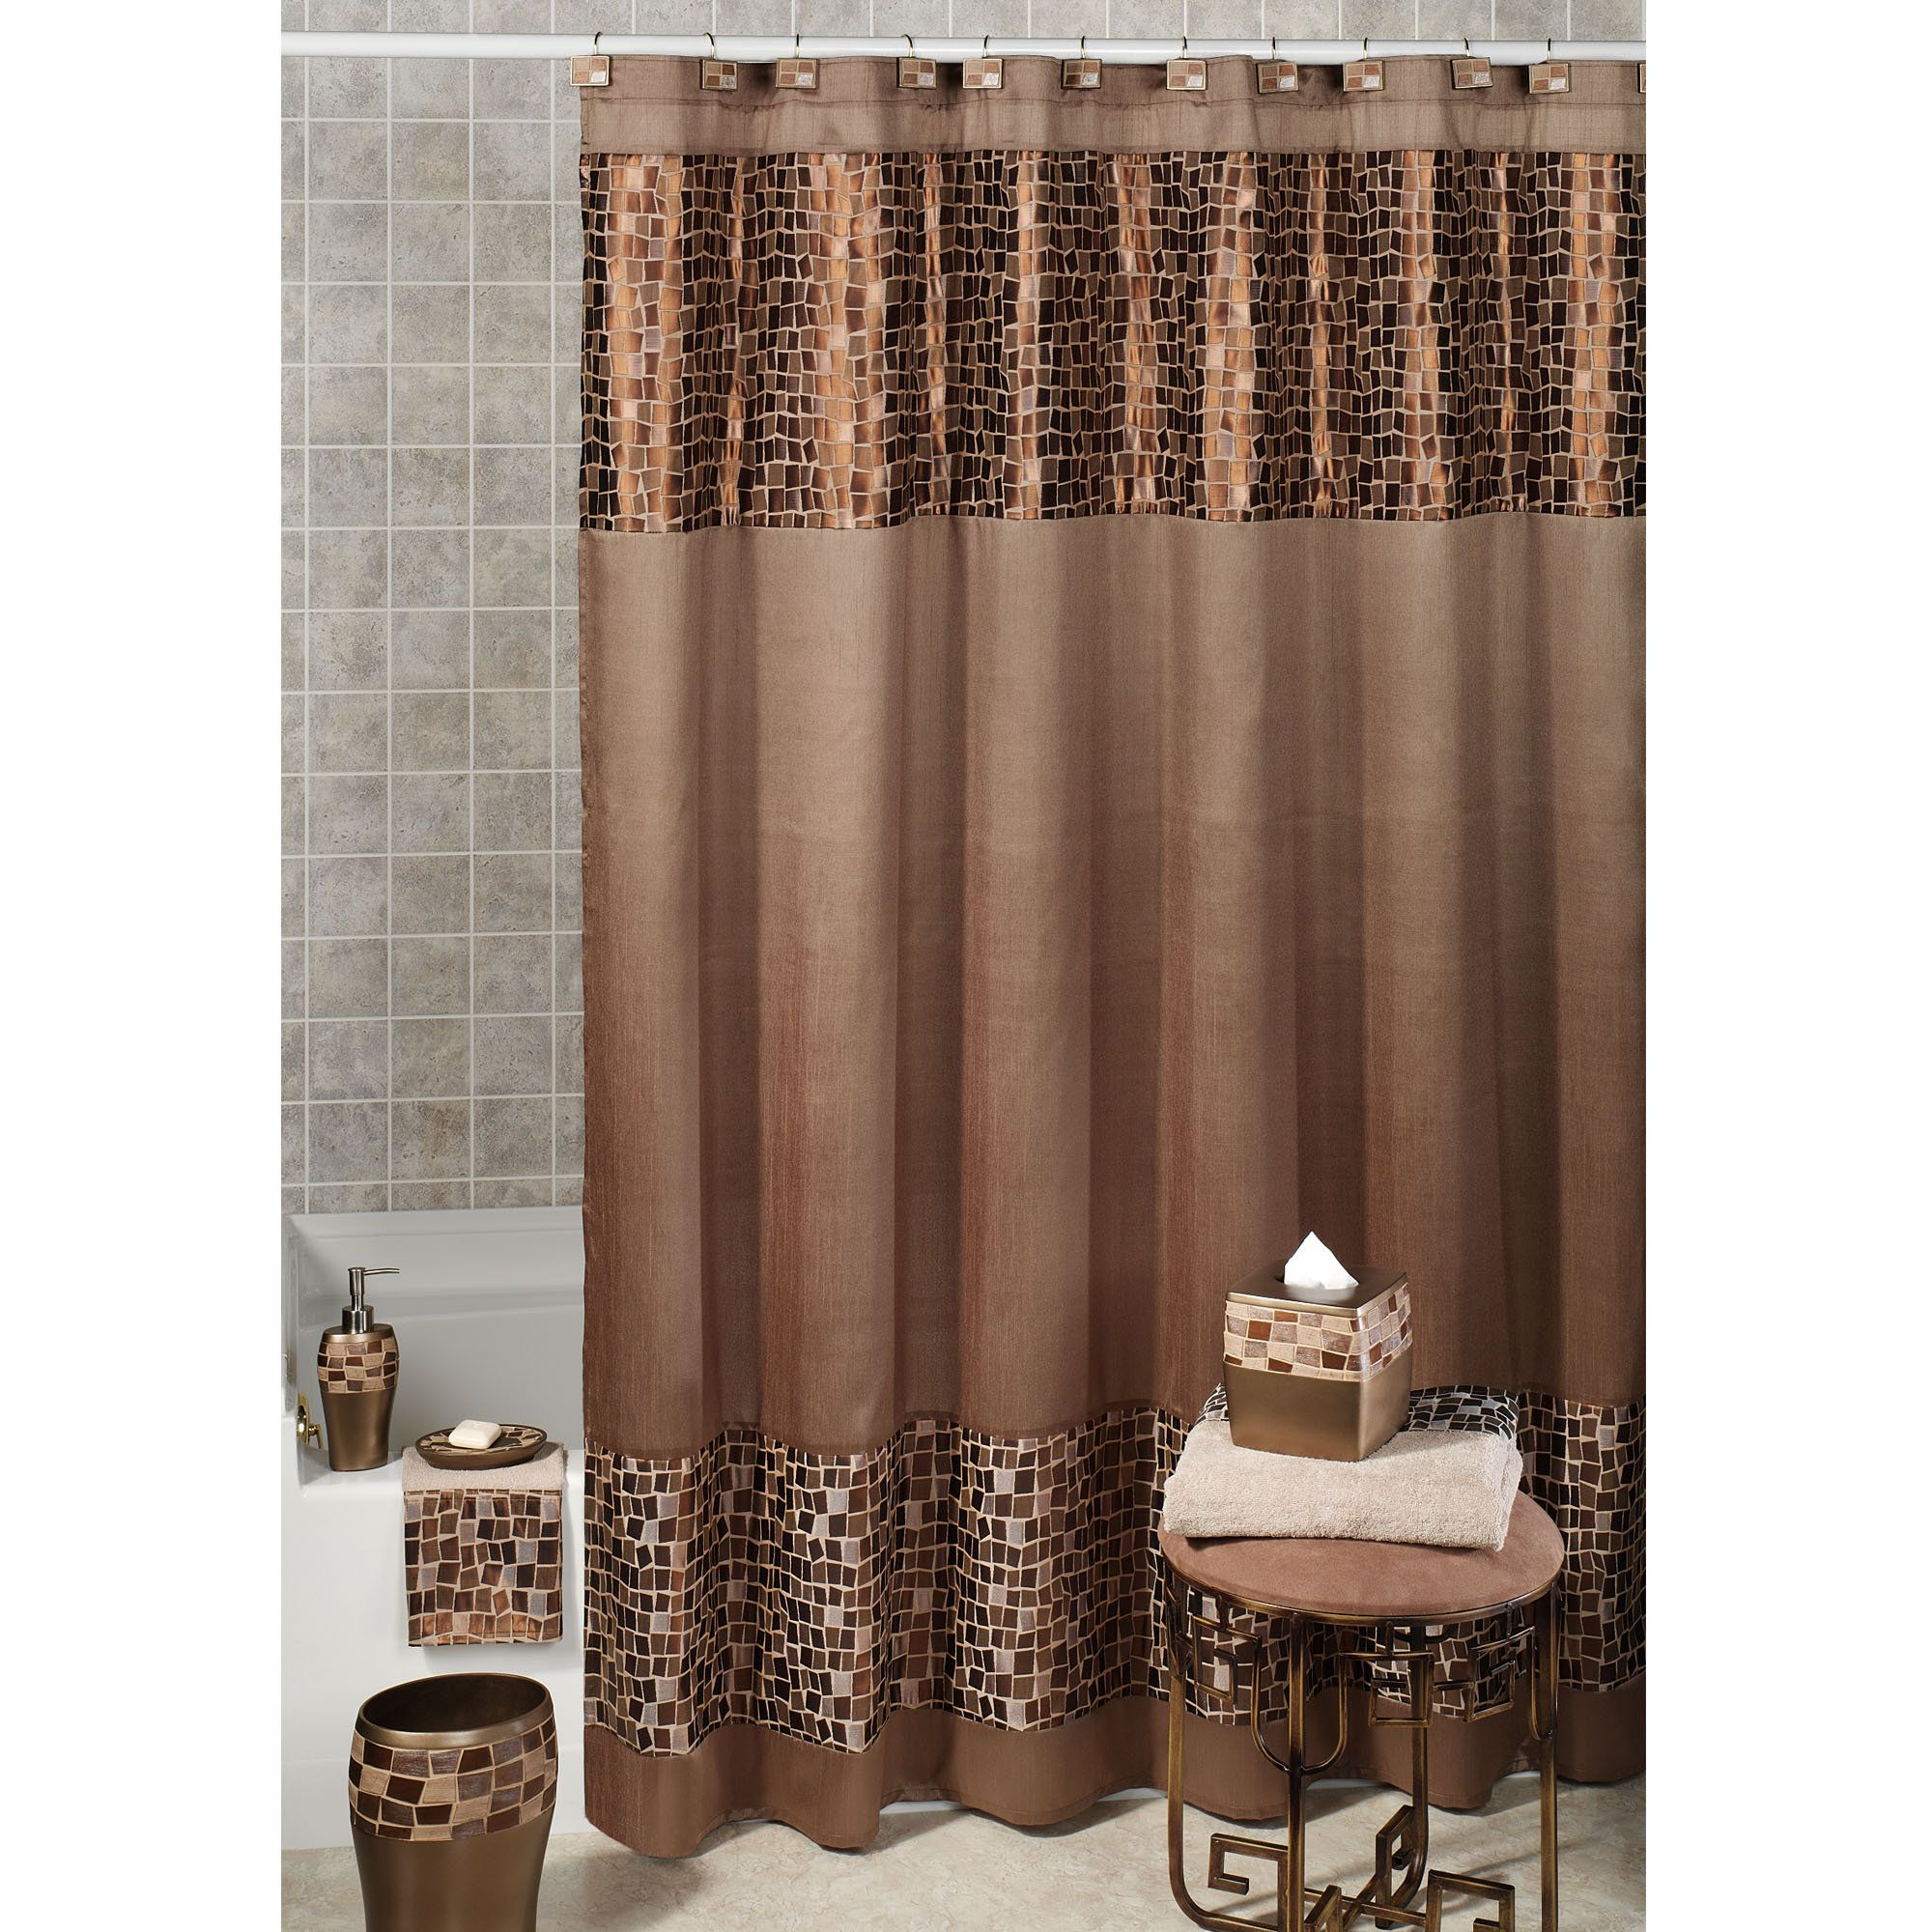 Bathroom Shower Curtain With Brown Shower Curtain Ideas For